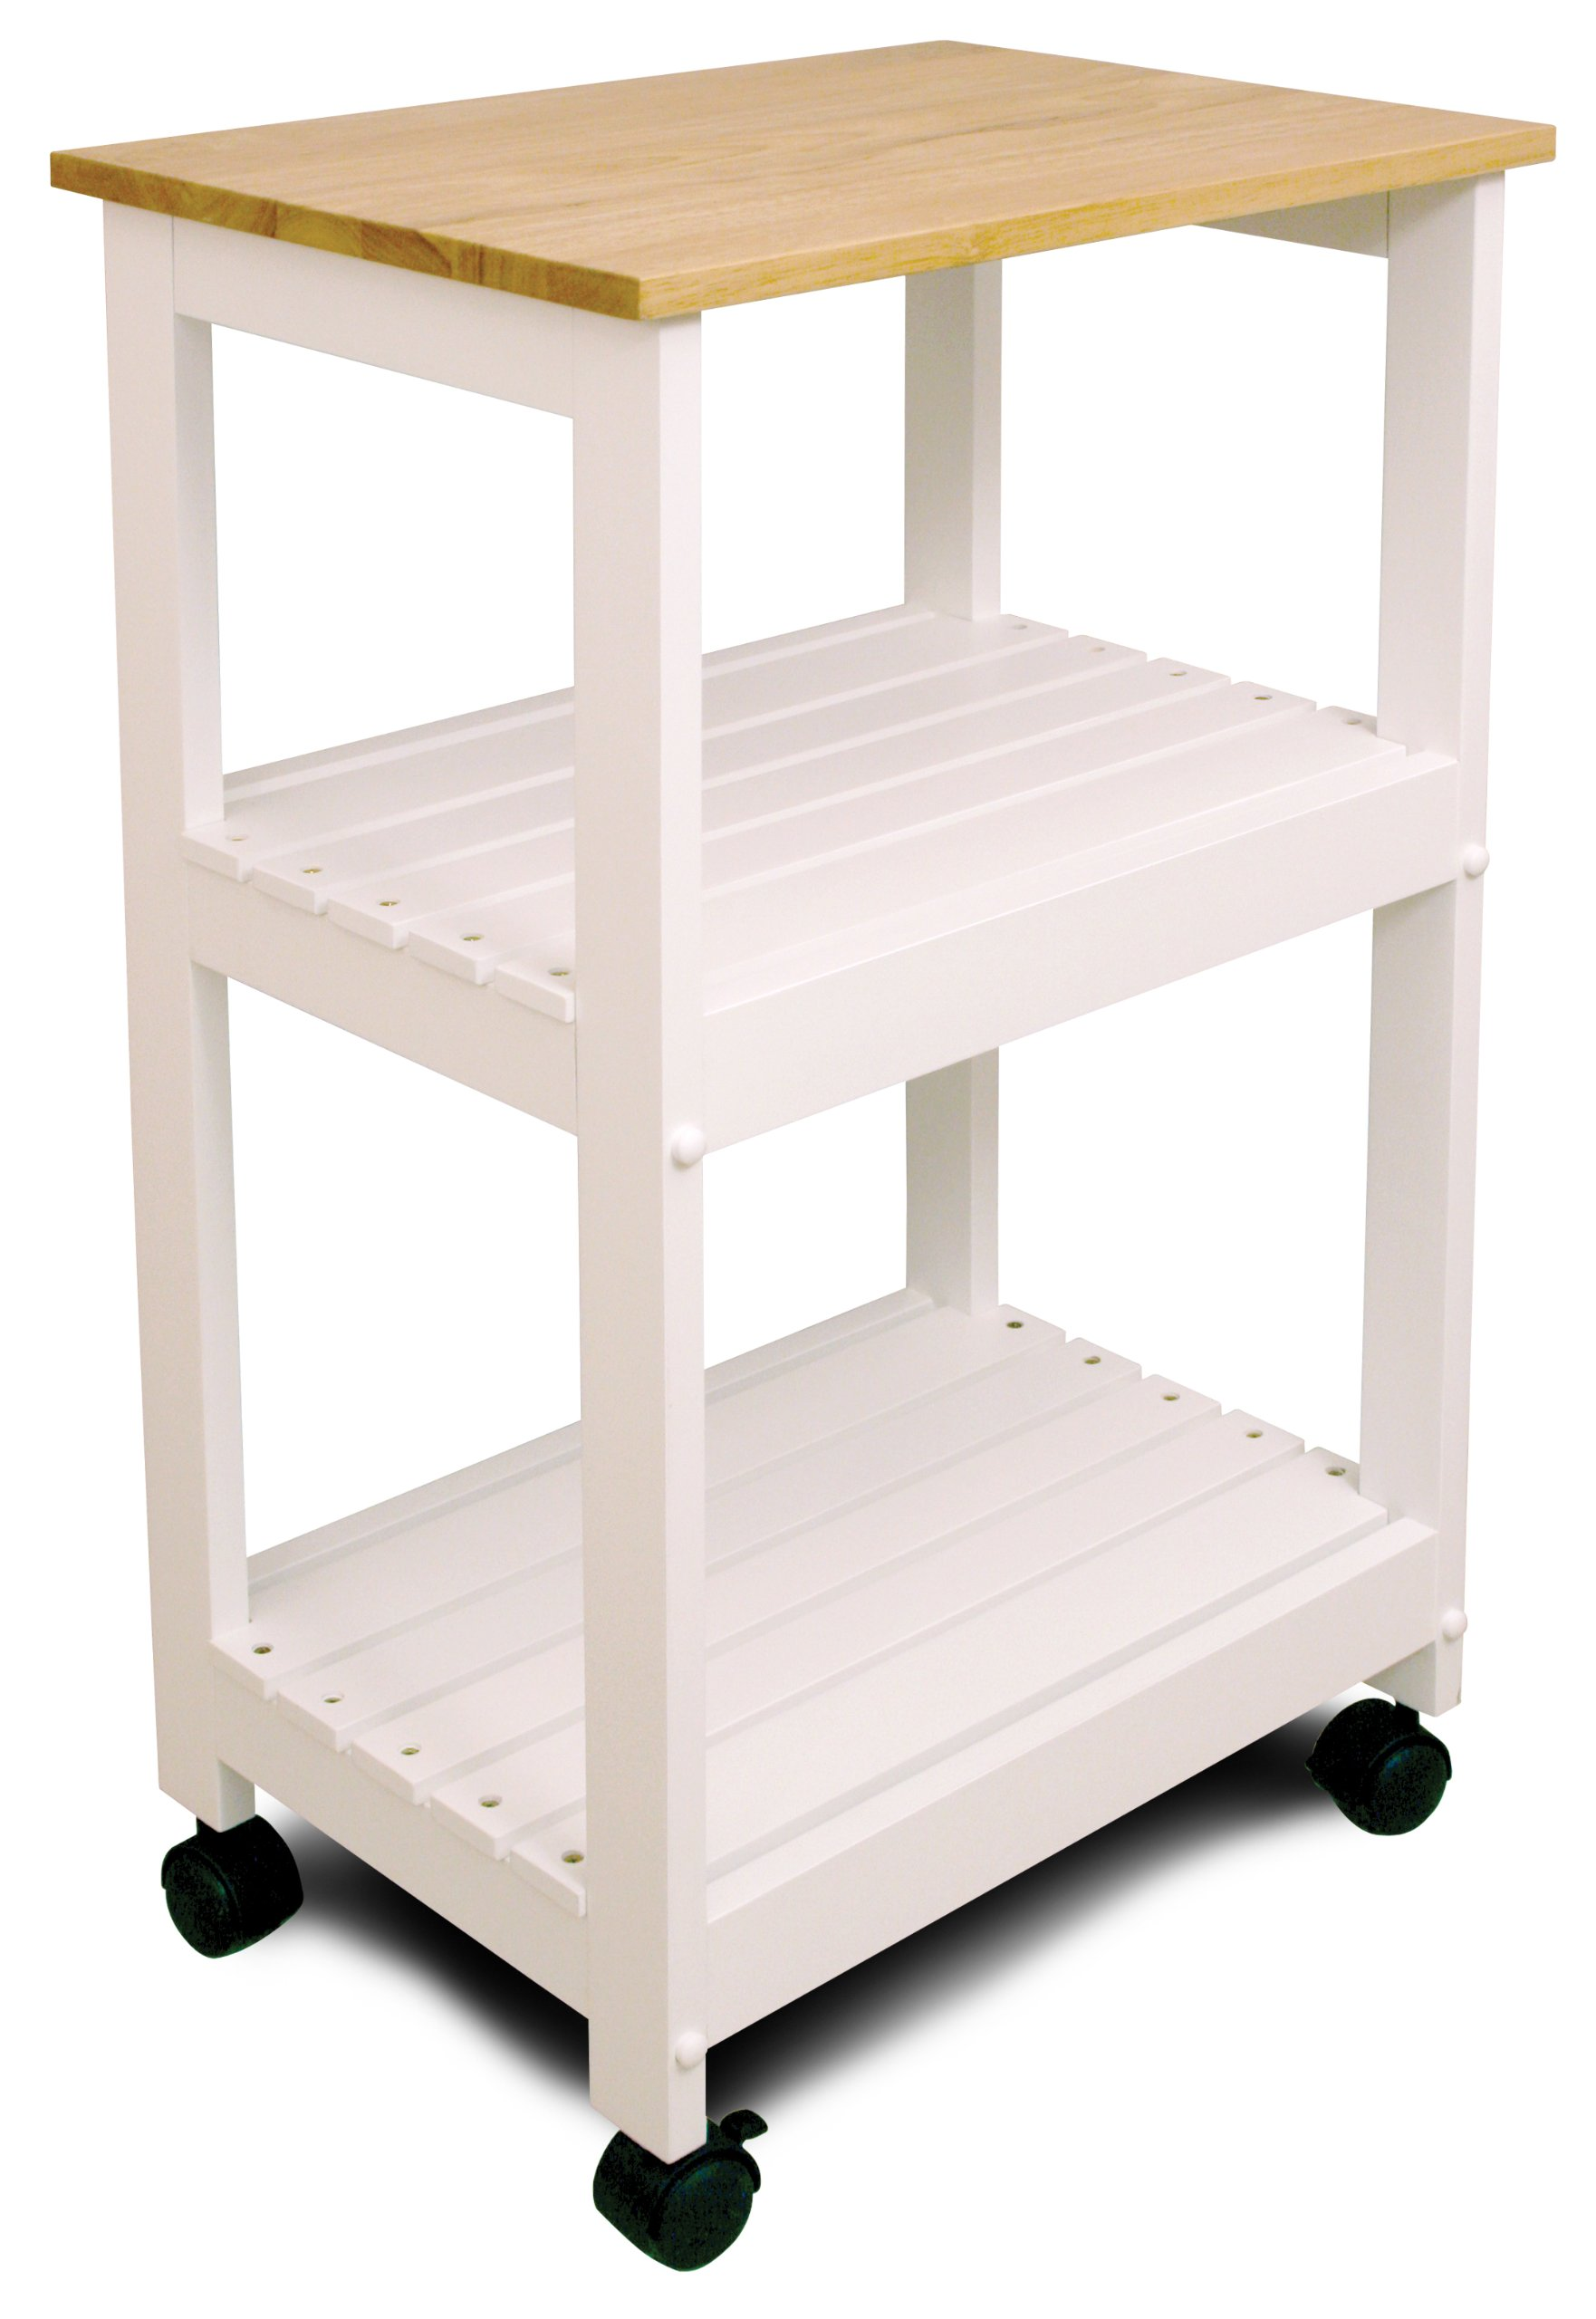 Catskill Craftsmen Utility Kitchen Cart/Microwave Stand, White Base with Natural Top by Catskill Craftsmen (Image #1)